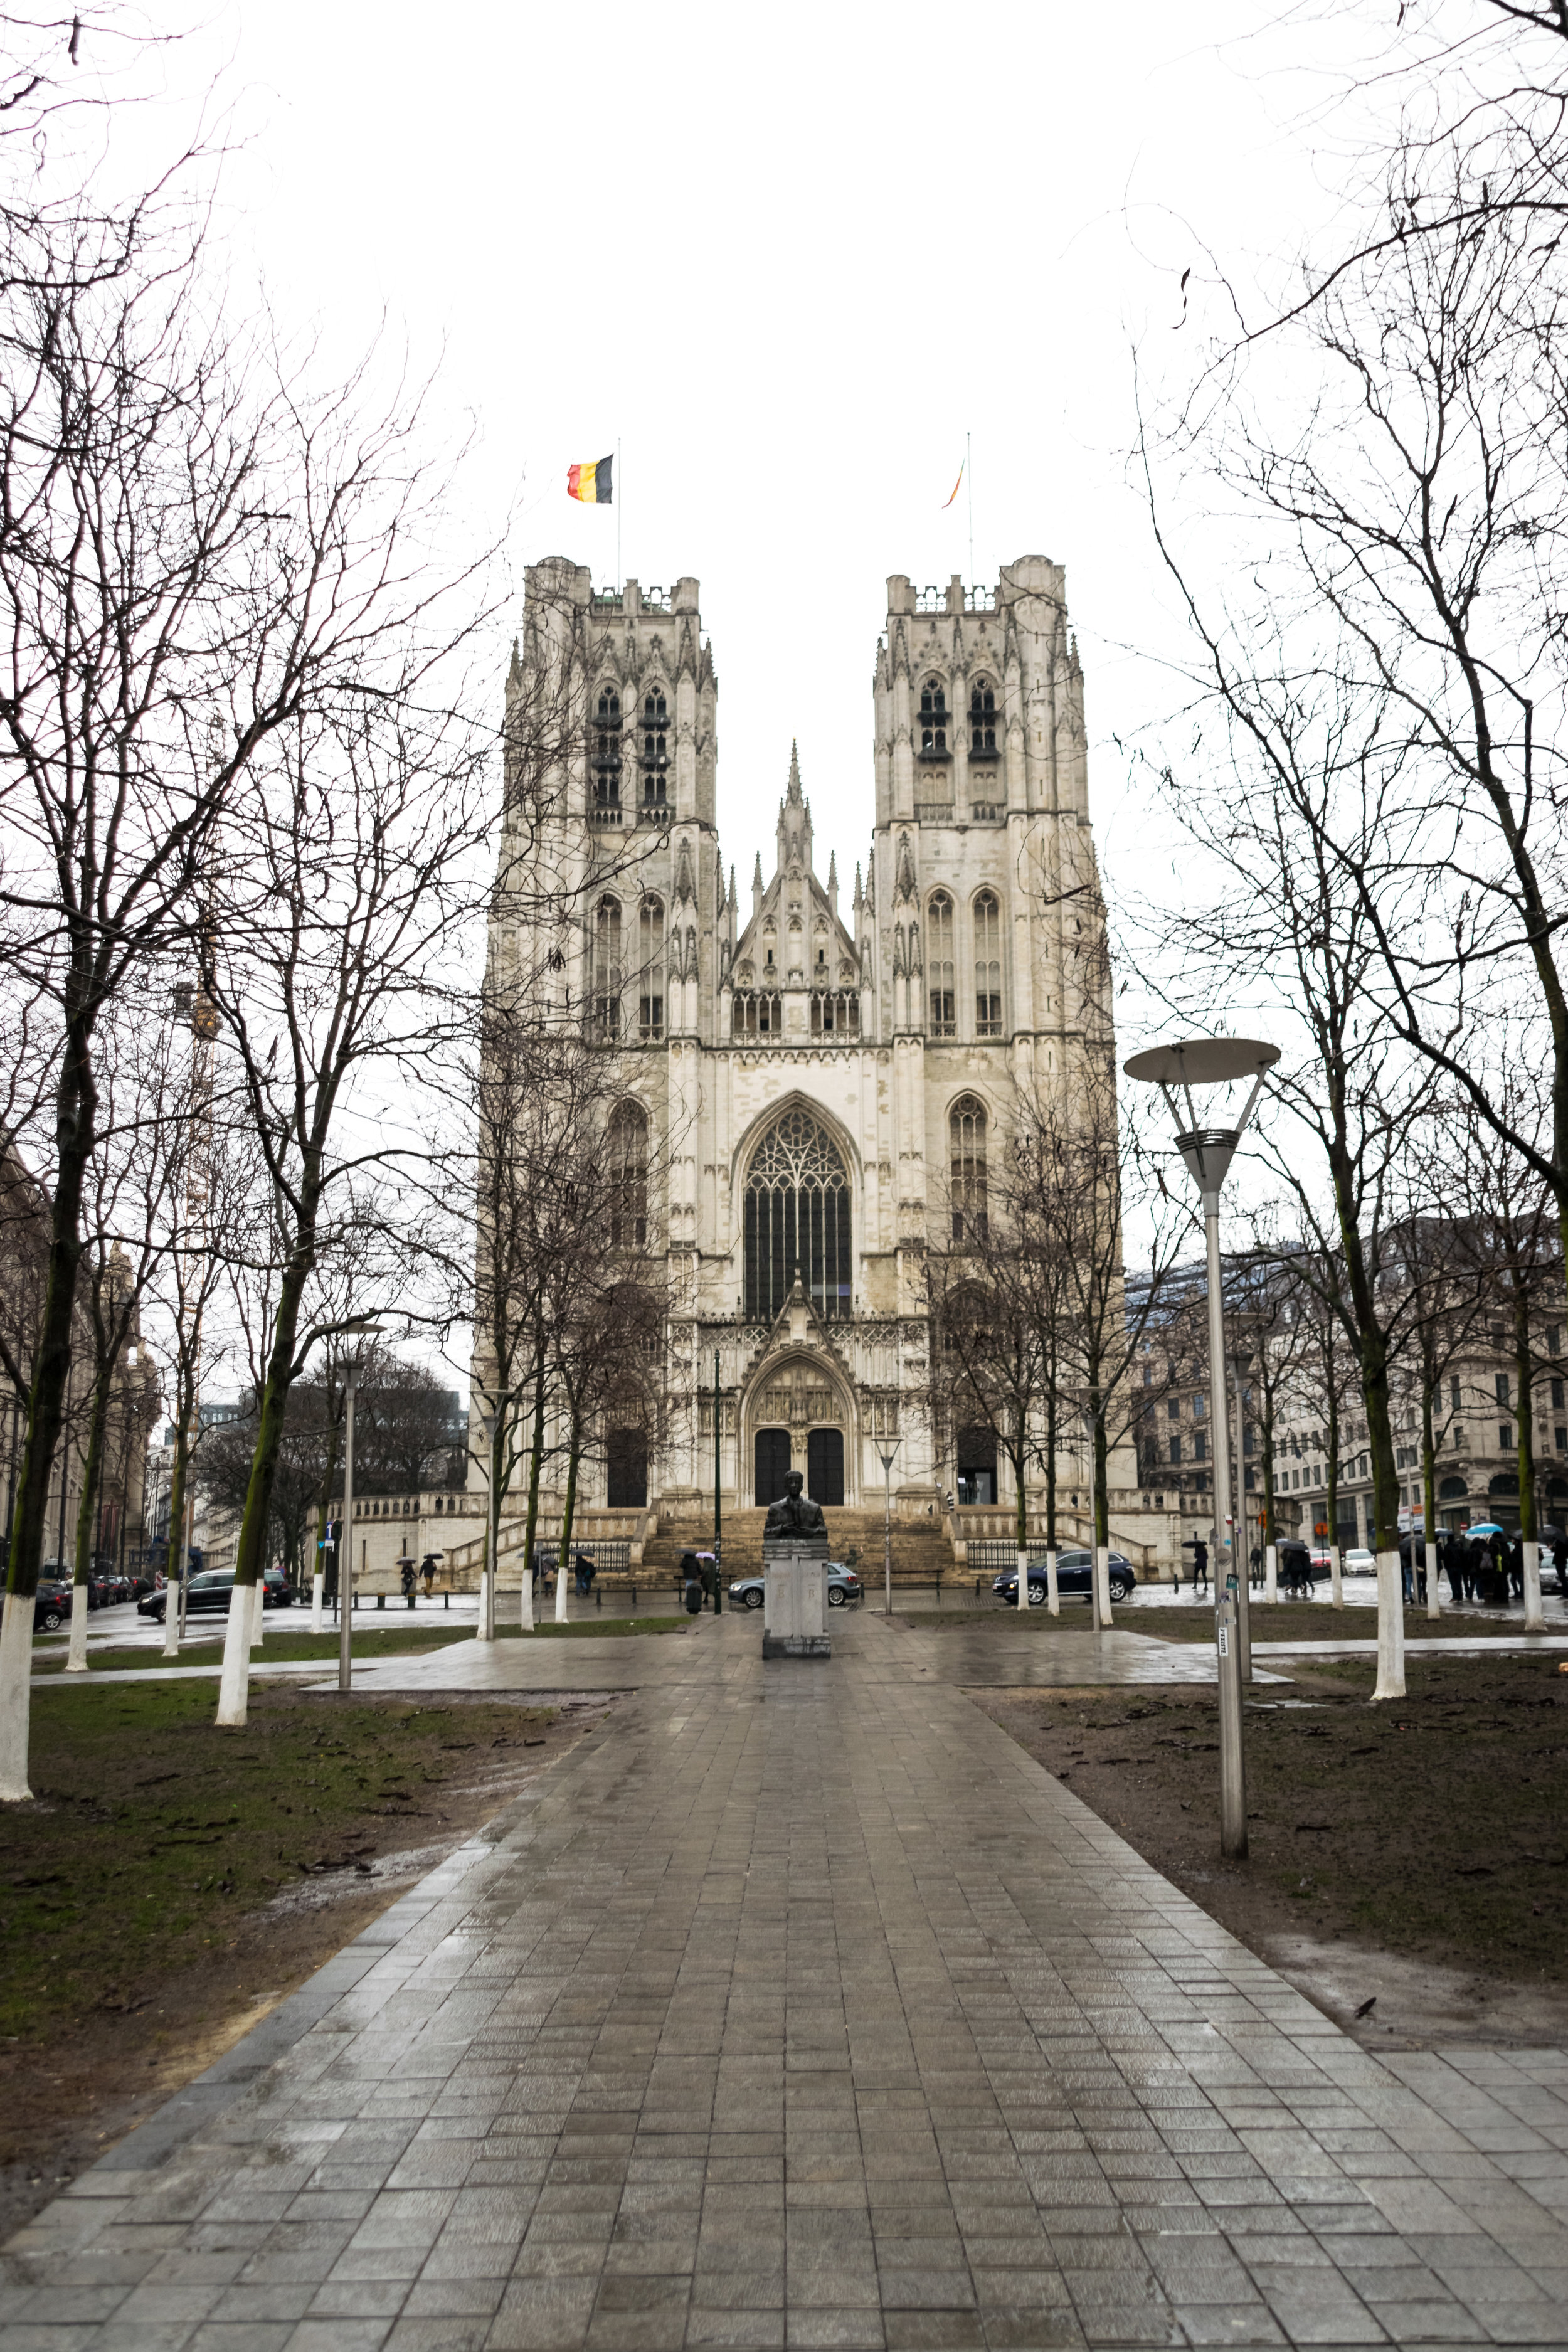 the gothic 9th-century St. Goedele/St. Michiels Cathedral